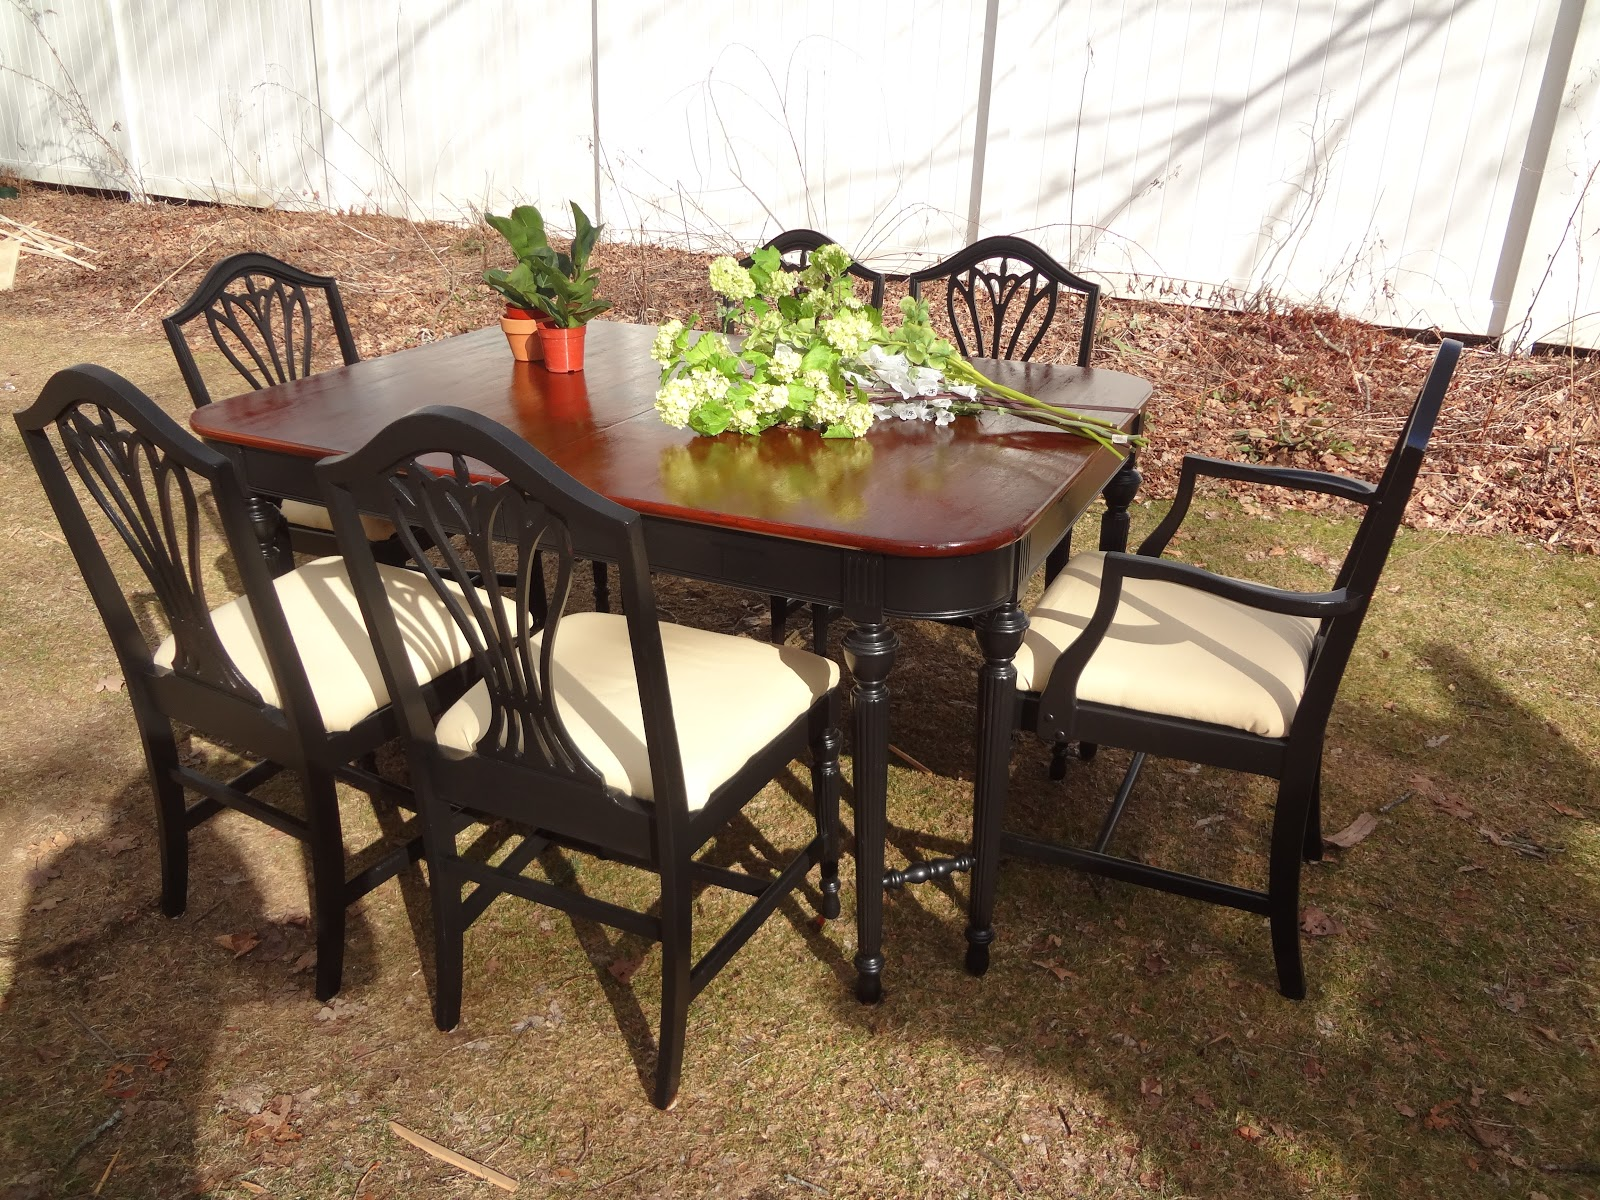 Heir and Space Black Painted Dining Chairs